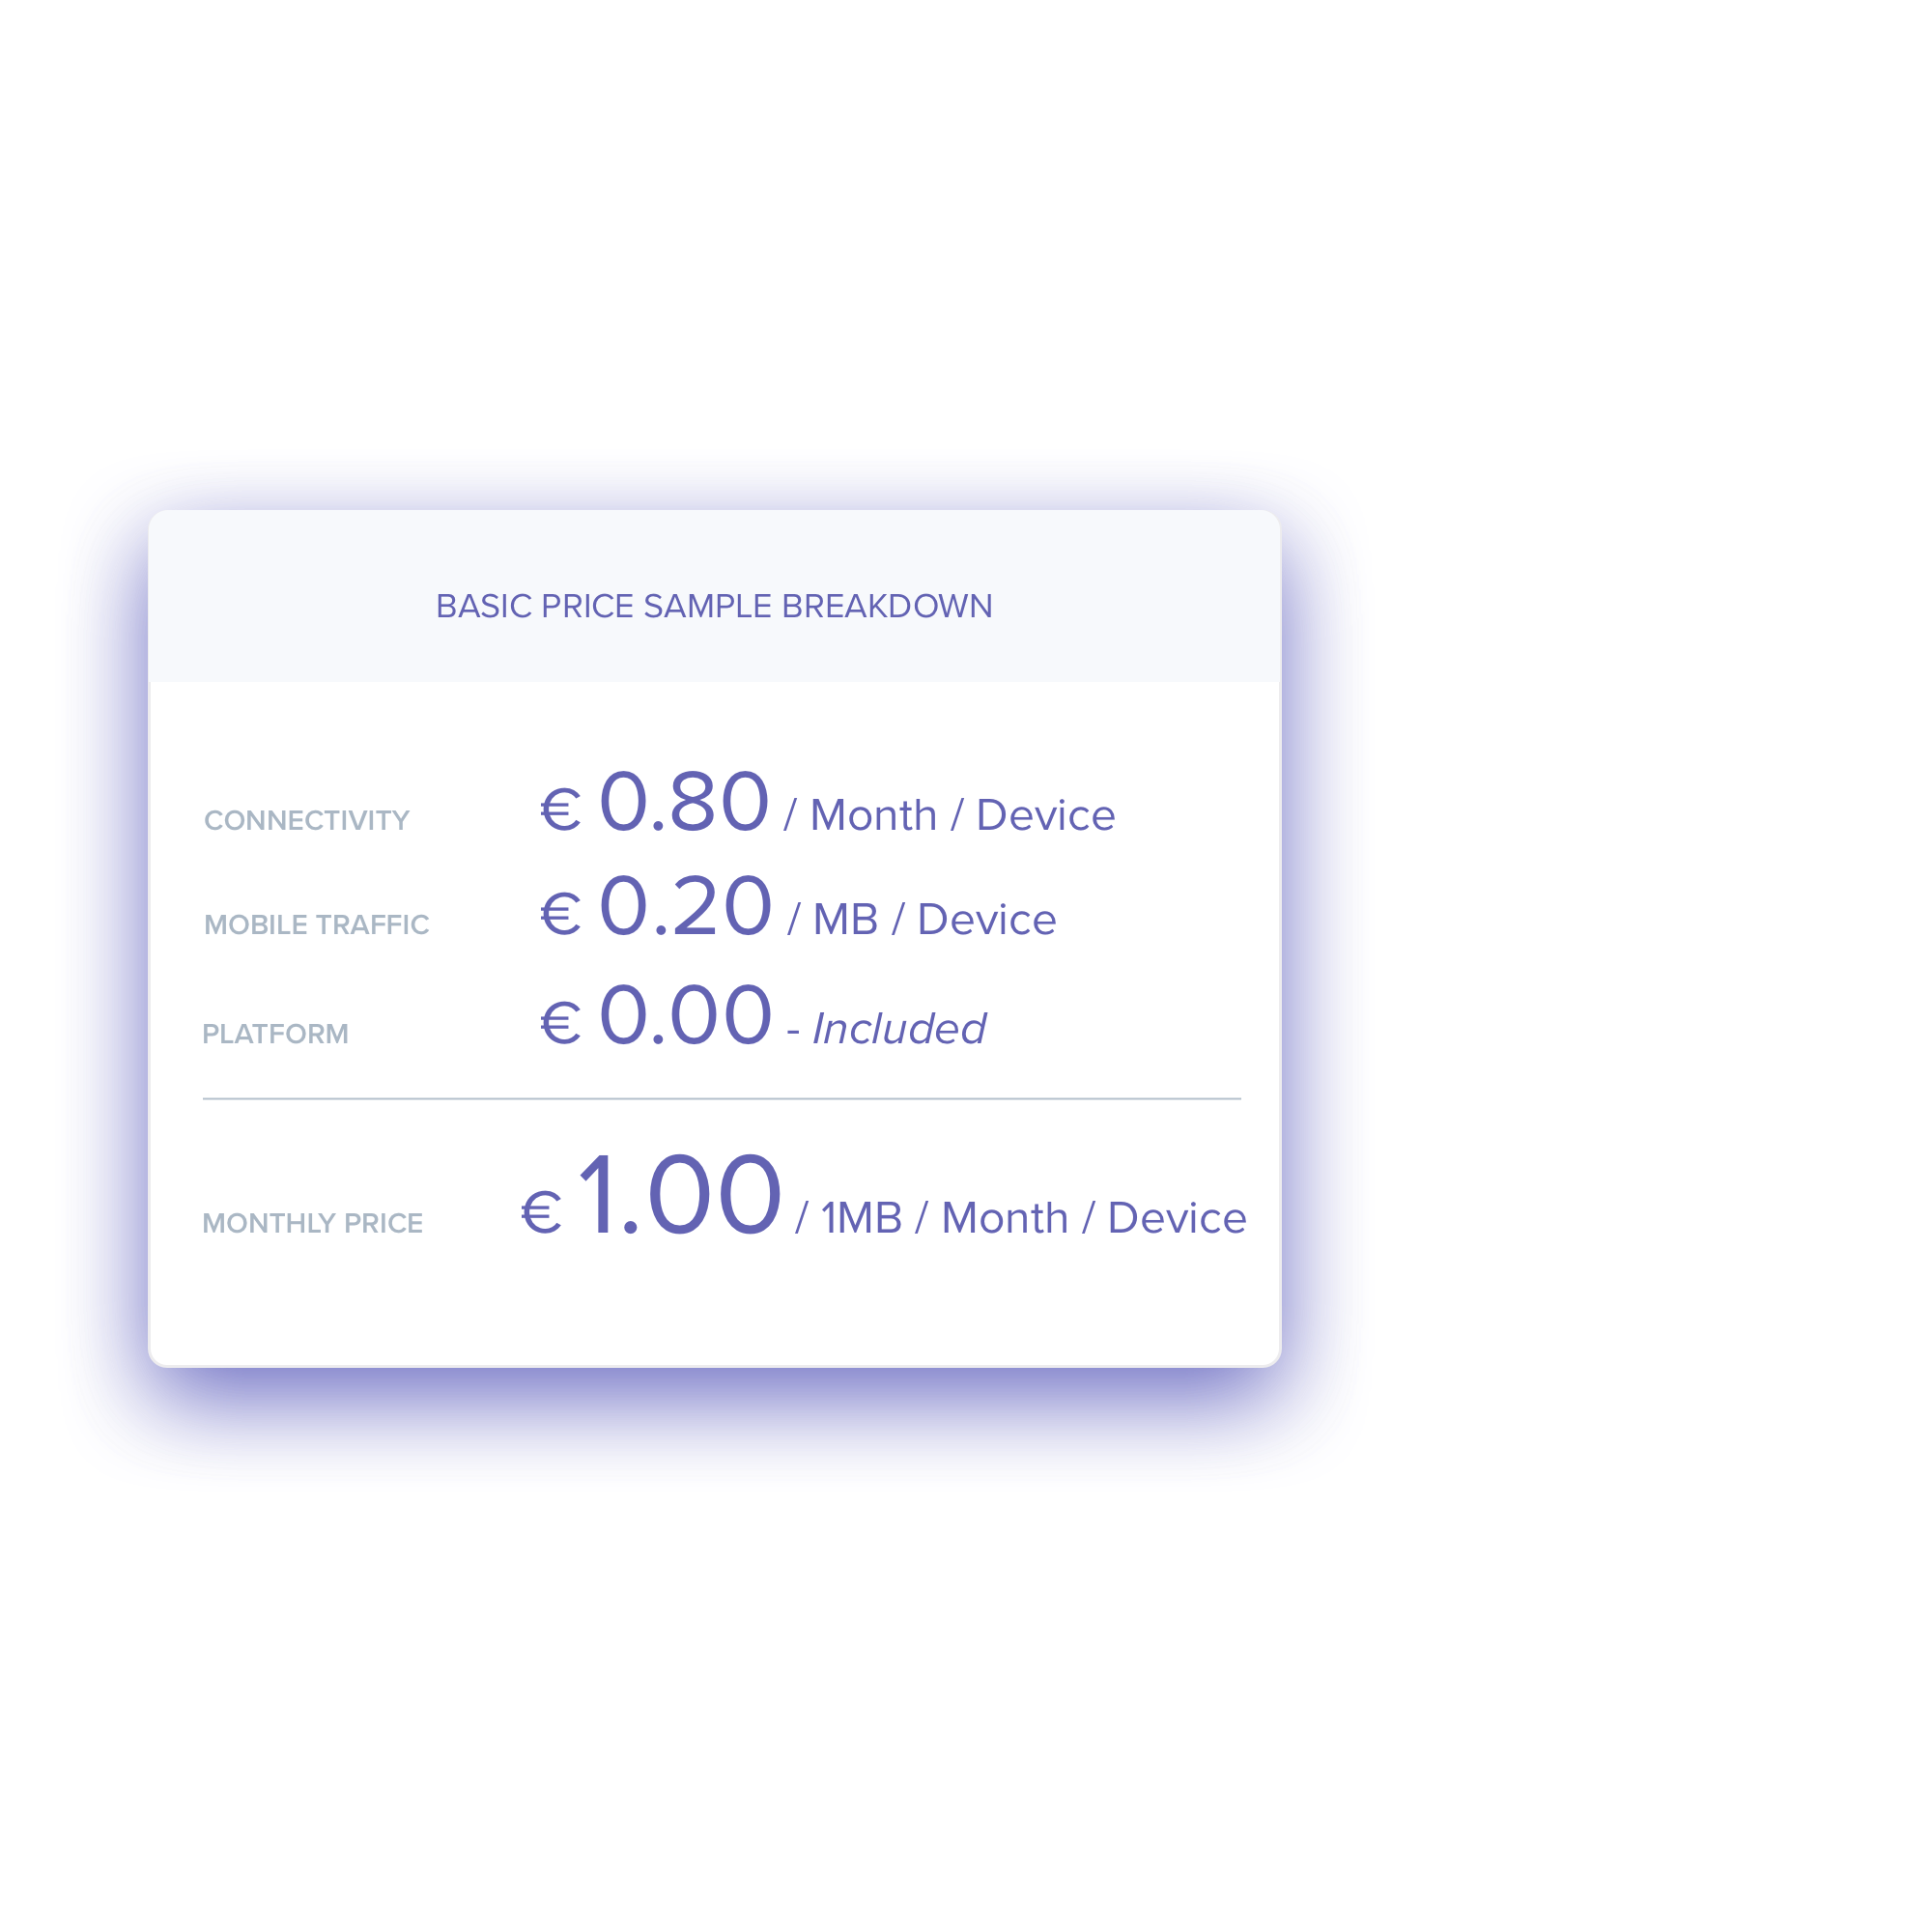 Price Sample - As a rule of thumb, our prices are:✔Connectivity €0.80 / month / device✔Data on mobile network €0.20 / MB✔Prices valid for Standard Price Zone✔ Platform cost includedThese prices are valid in the EU and standard price countries and based on small volumes.For higher volume orders, the pricing will reduce.We always offer competitive pricing!